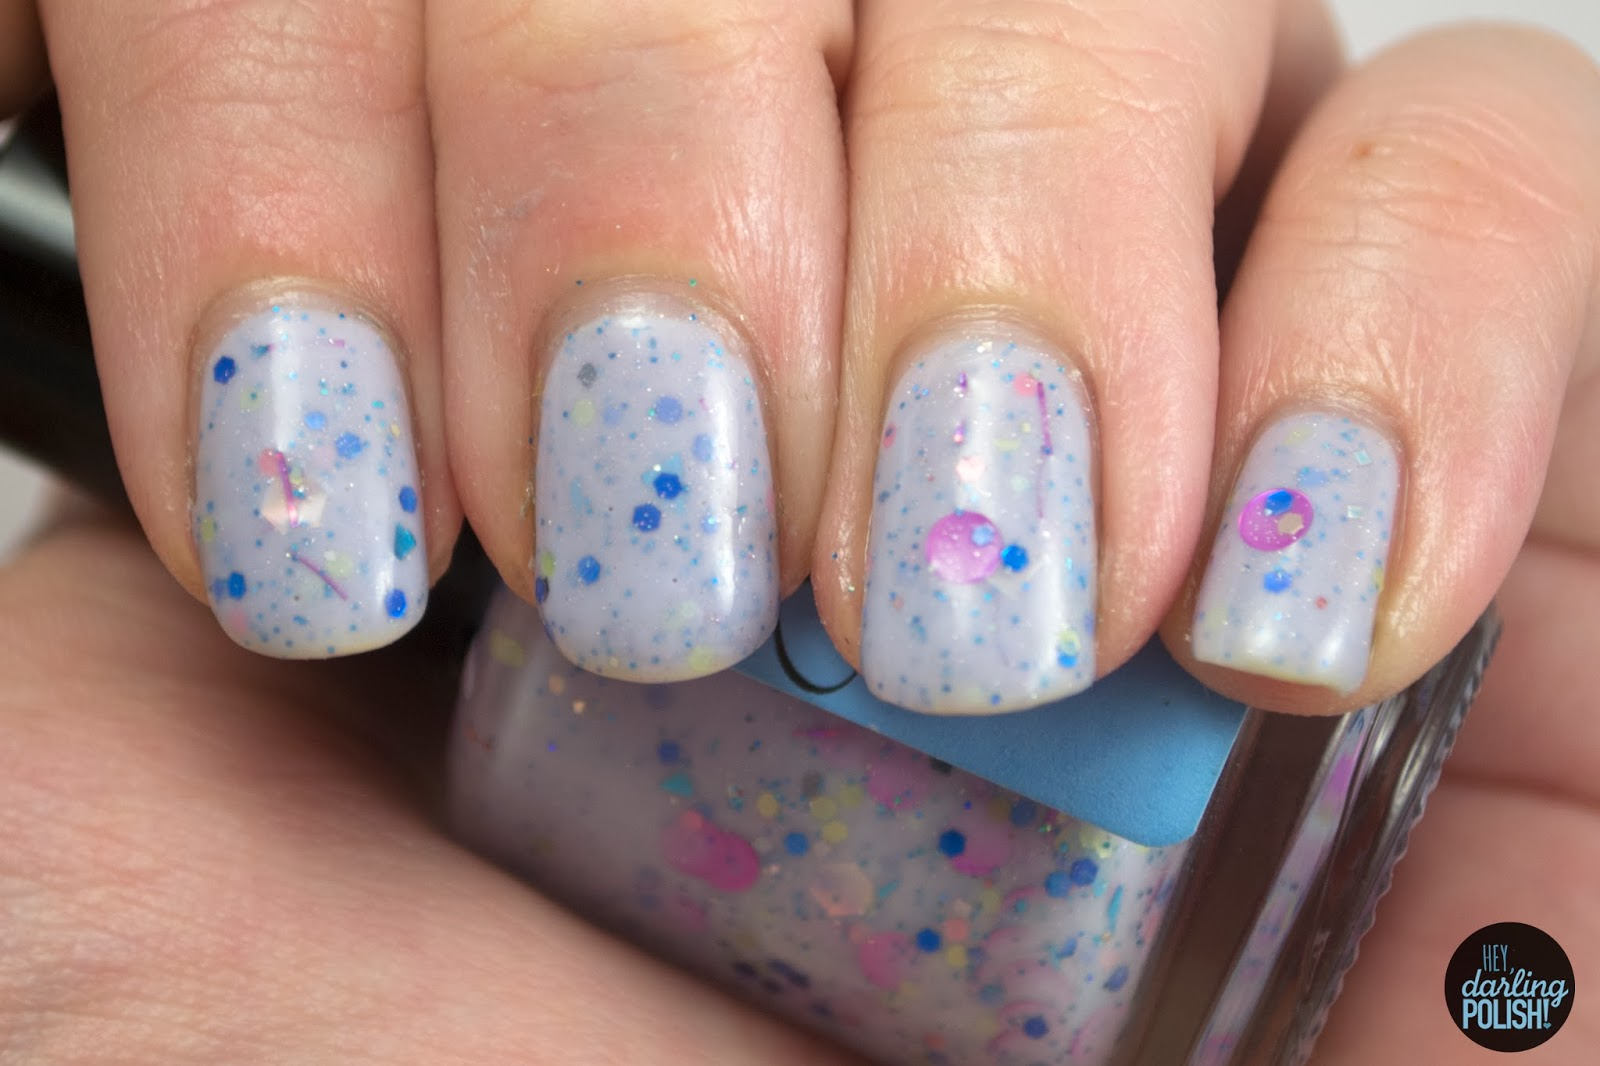 indie, indie polish, glossome polish, indie friday, glitter crelly, hey darling polish, peri-twinkle, blue